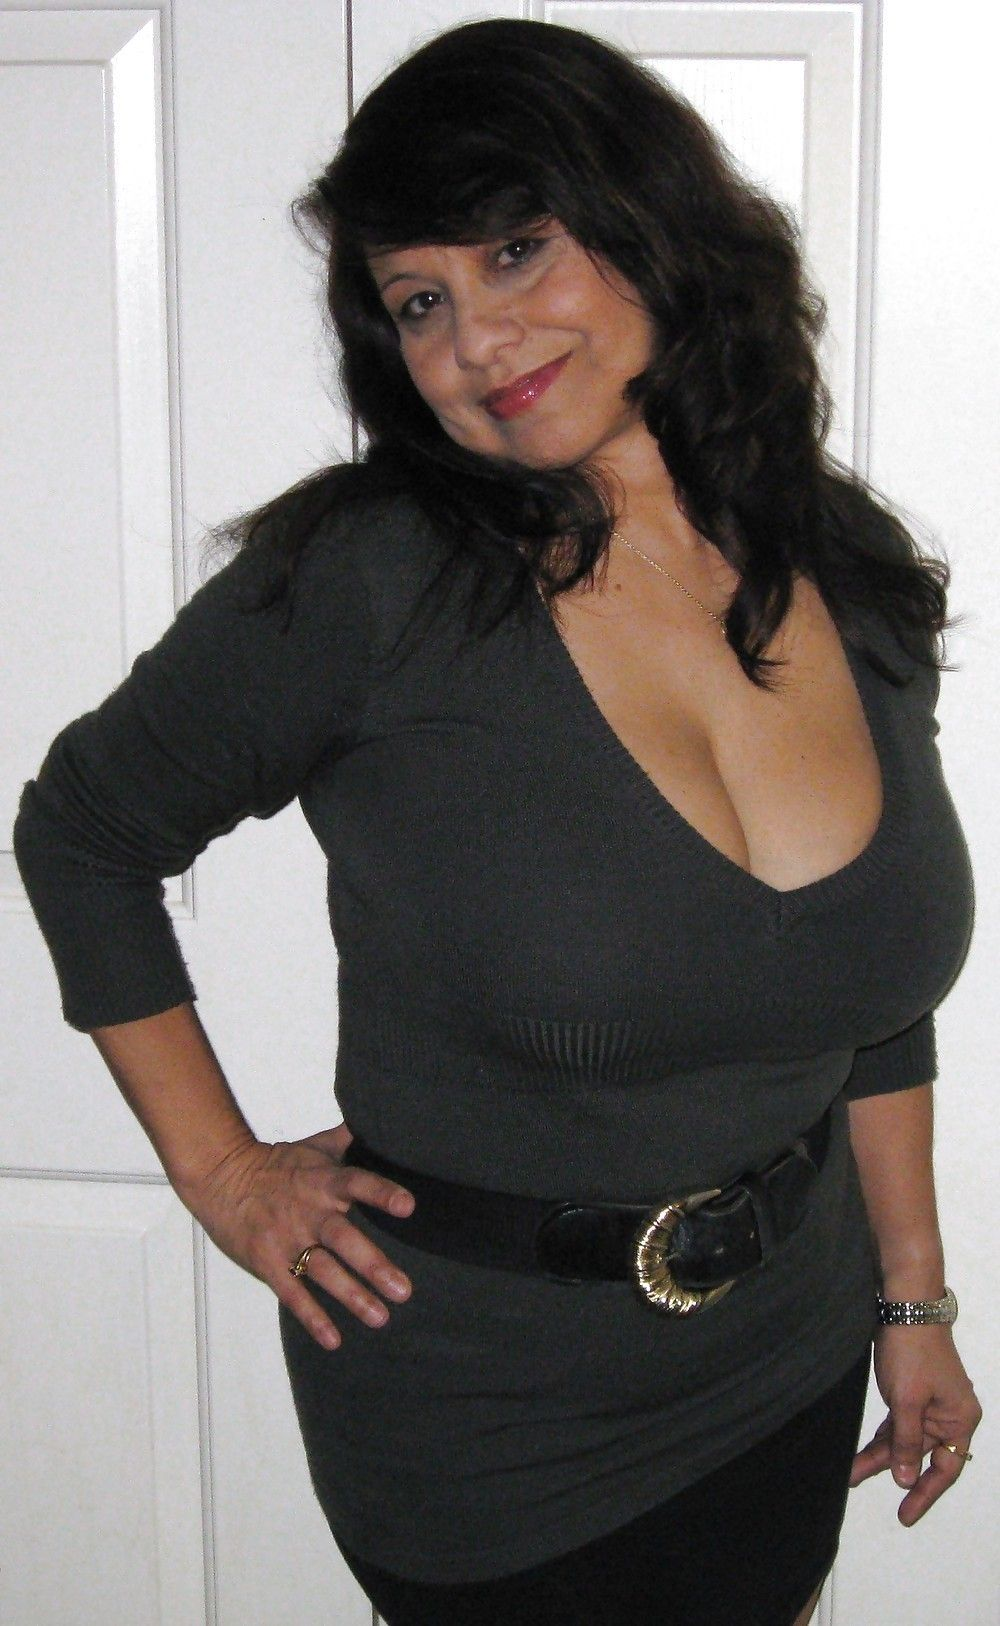 Have Big old women sexy good question